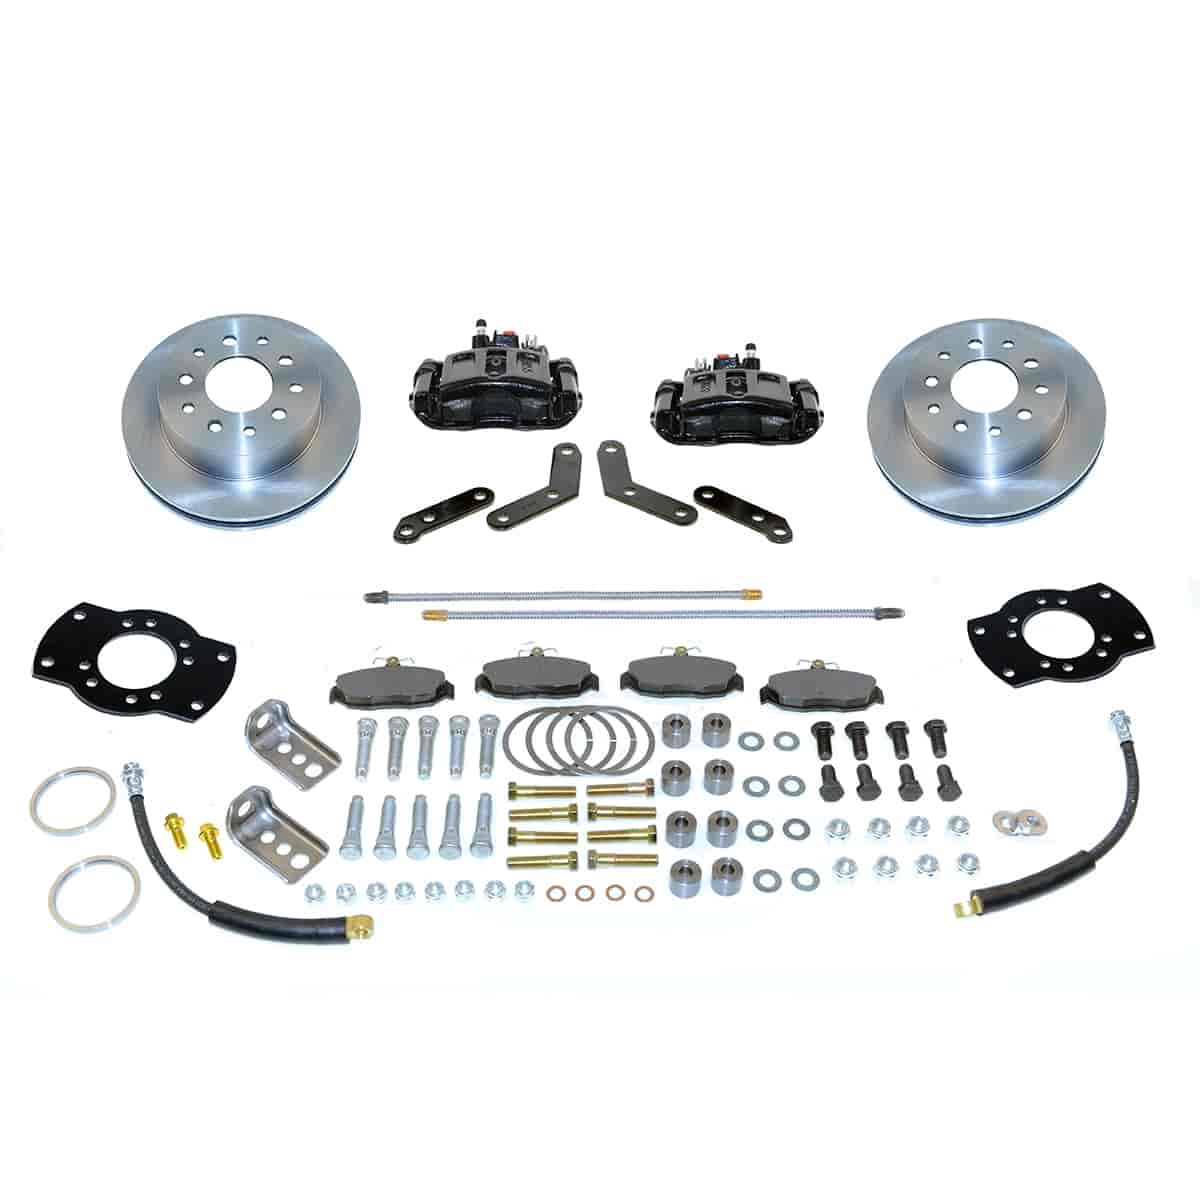 Stainless Steel Brakes A117-1BK - Stainless Steel Brakes Single Piston Rear Drum to Disc Brake Conversion Kits